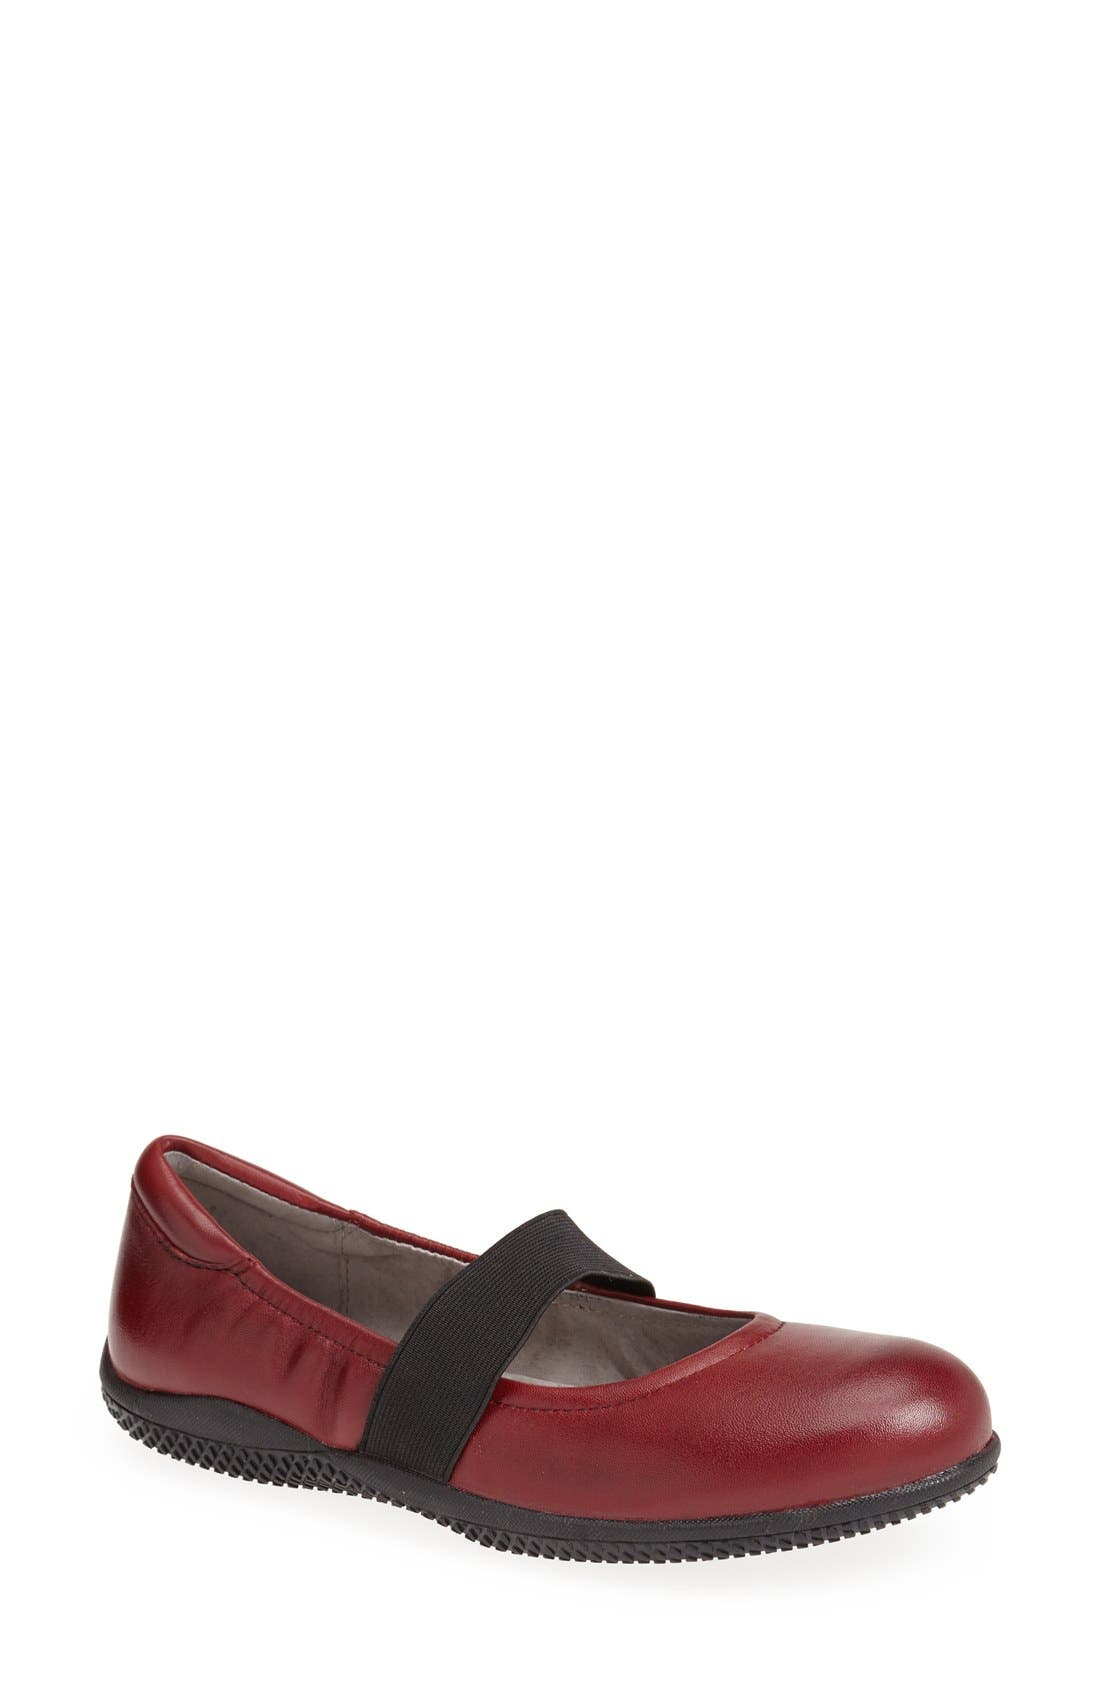 'High Point' Mary Jane Flat,                         Main,                         color, Dark Red